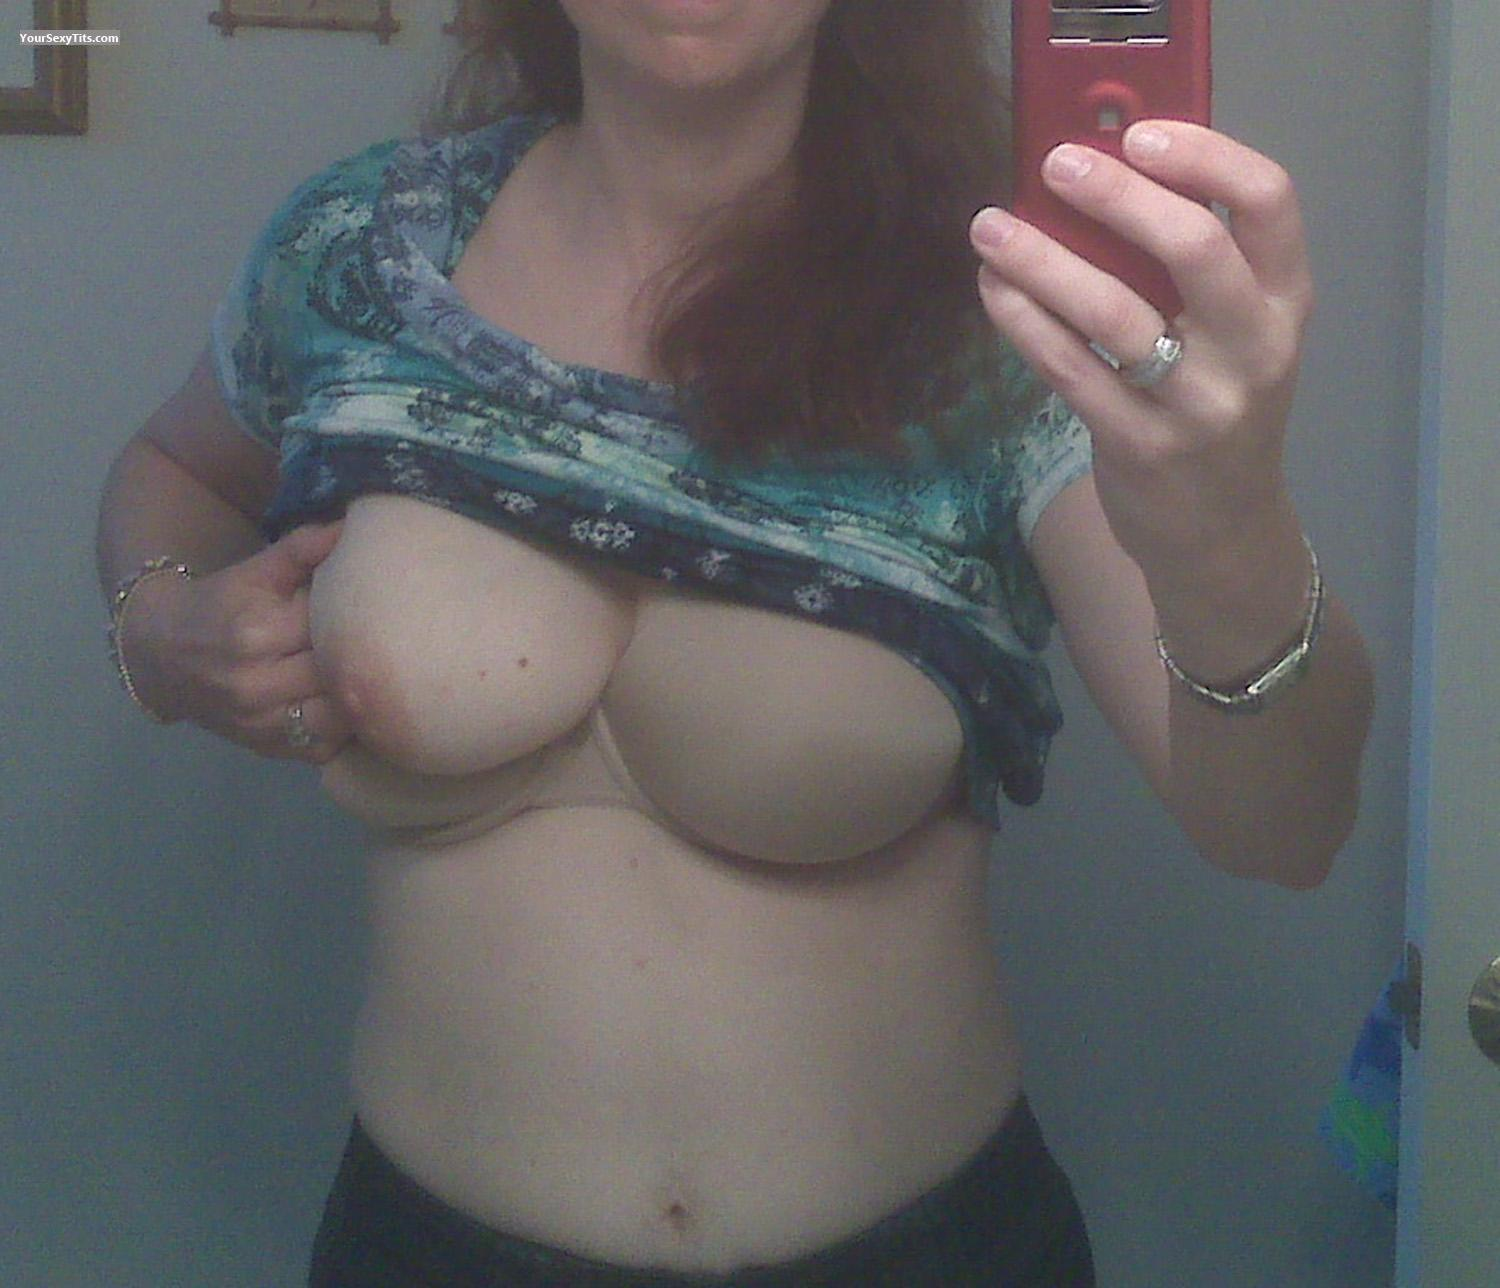 Tit Flash: Very Big Tits - LAS from United States